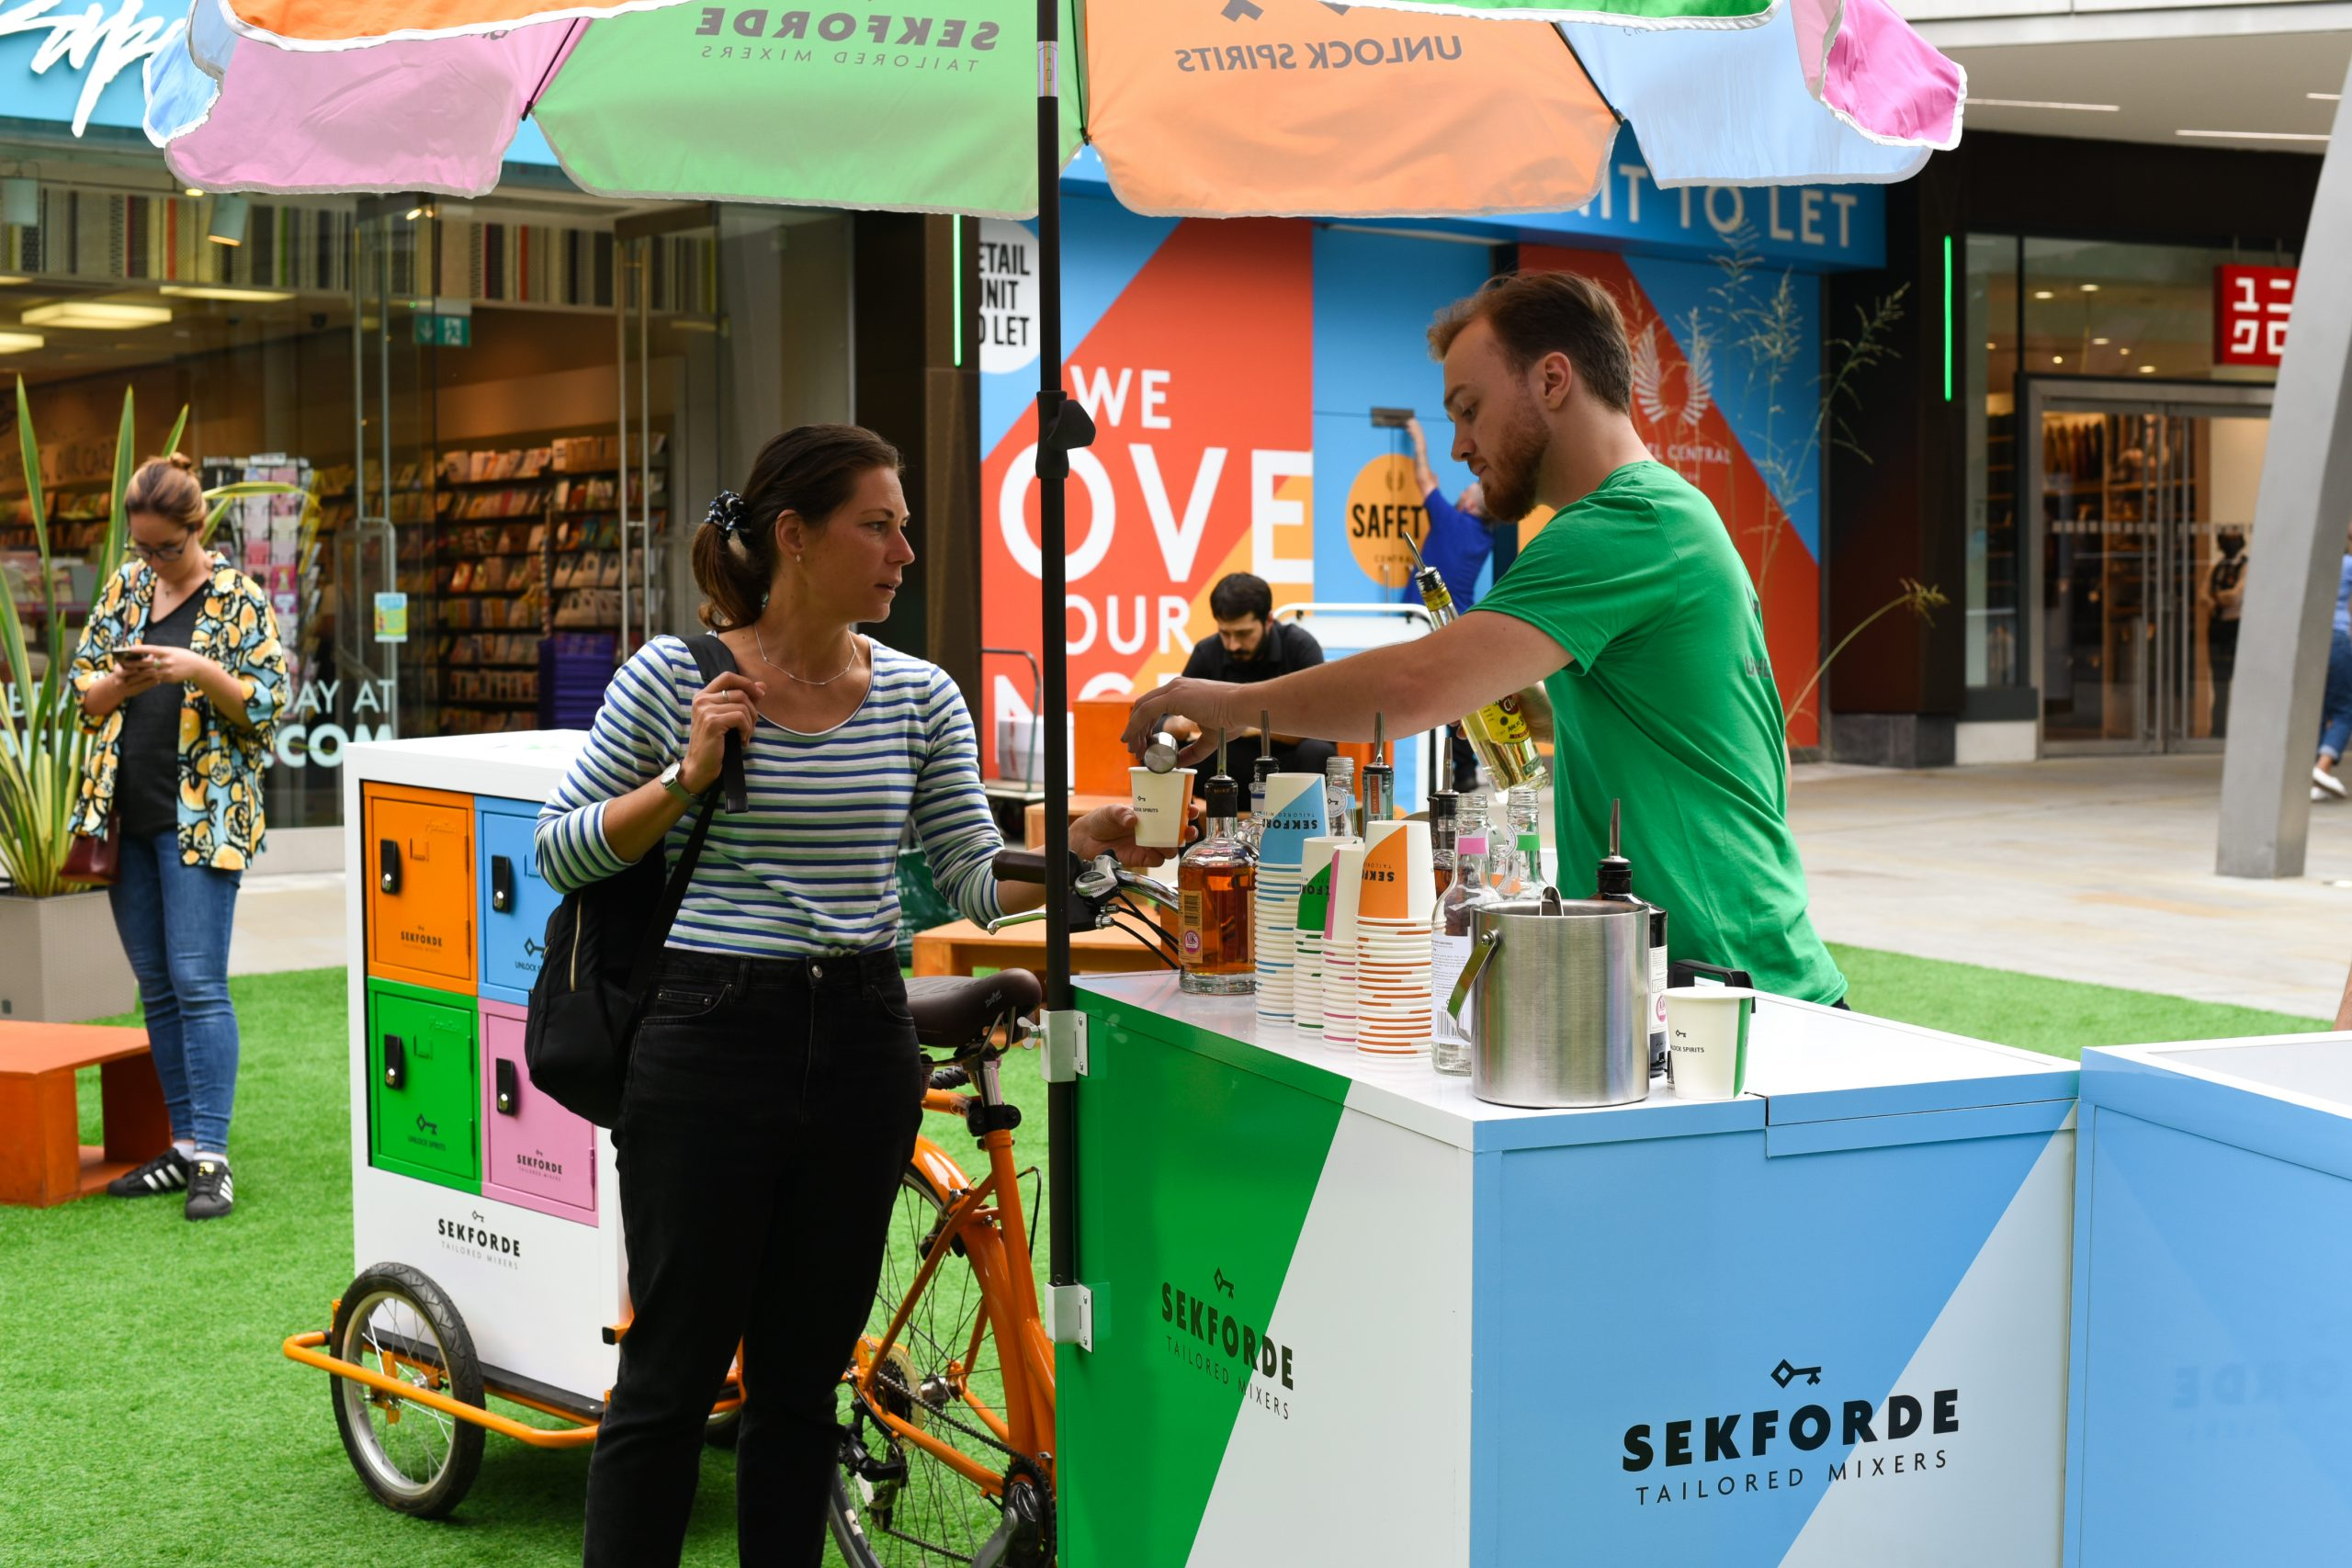 Hitting The Road With Sekforde